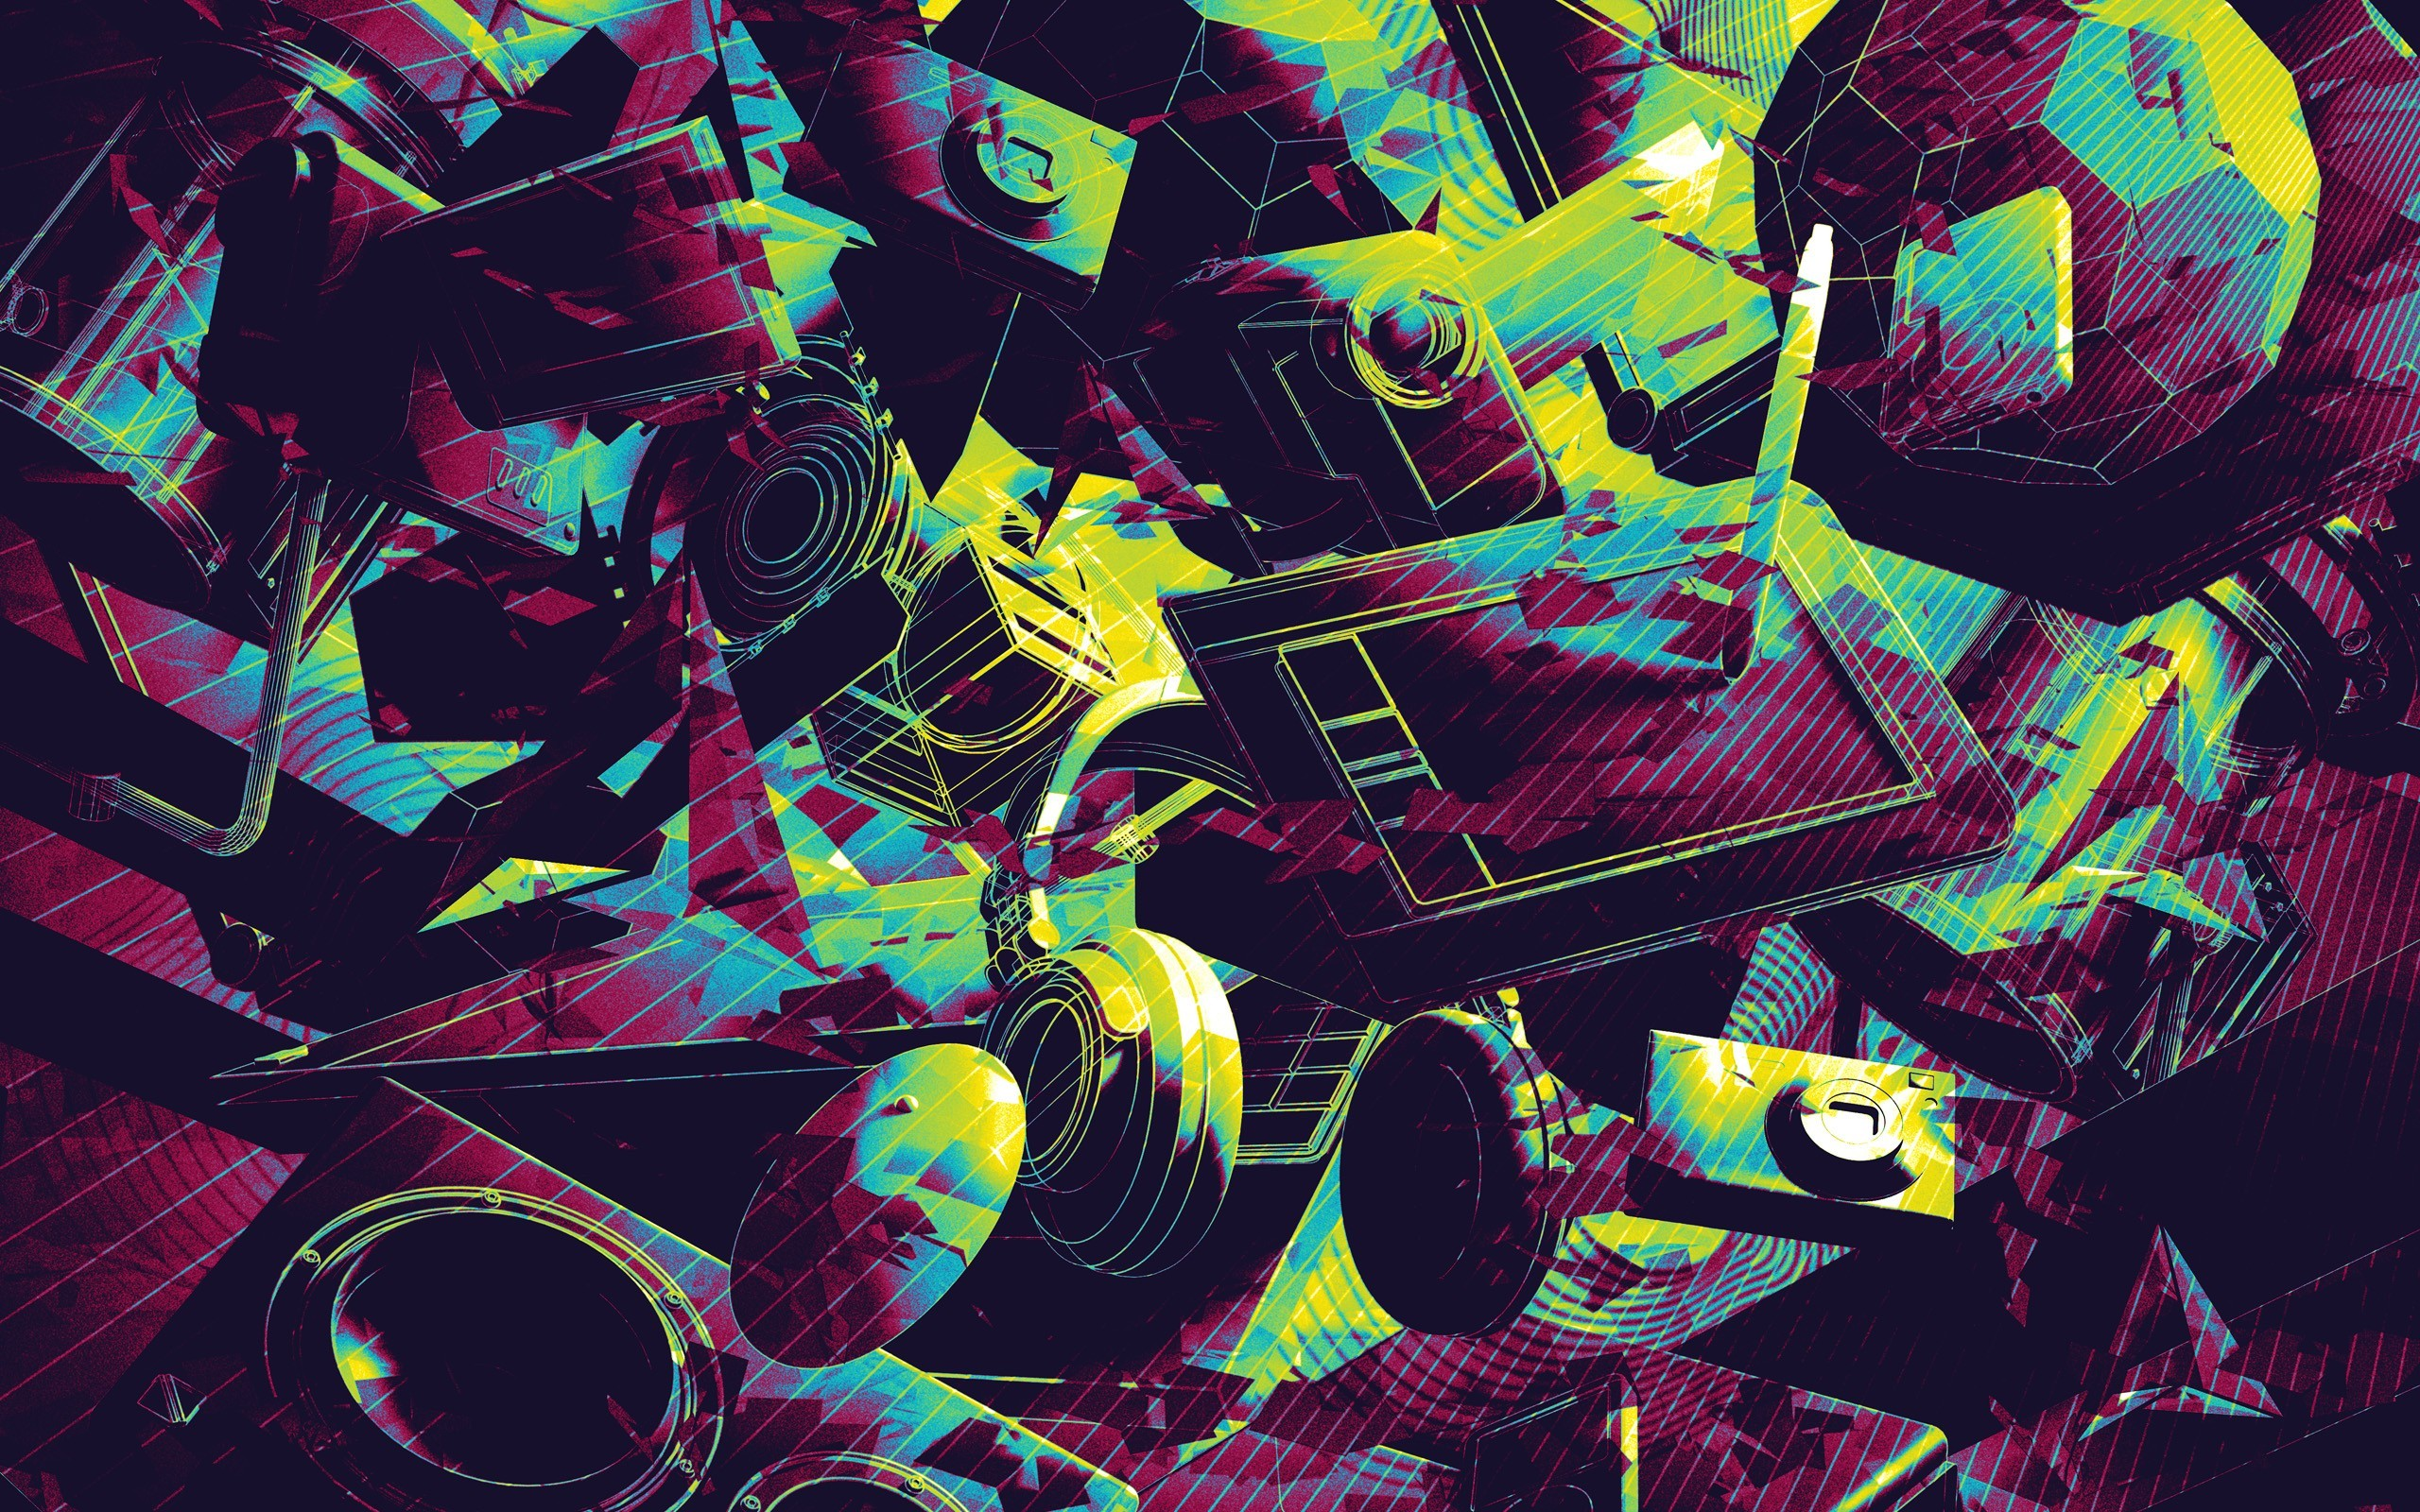 headphones, abstract, cameras, artwork, Tablets, pens :: Wallpapers